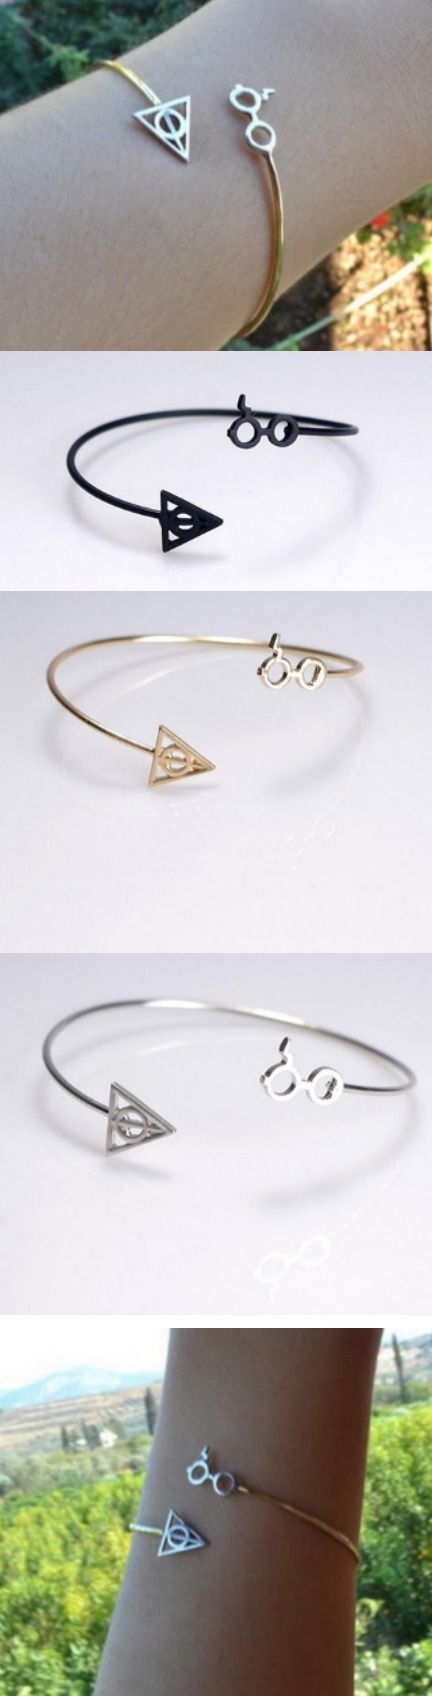 Harry Potter Death Artifact Bangles Bracelet! Click The Image To Buy It Now or Tag Someone You Want To Buy This For. #HarryPotter